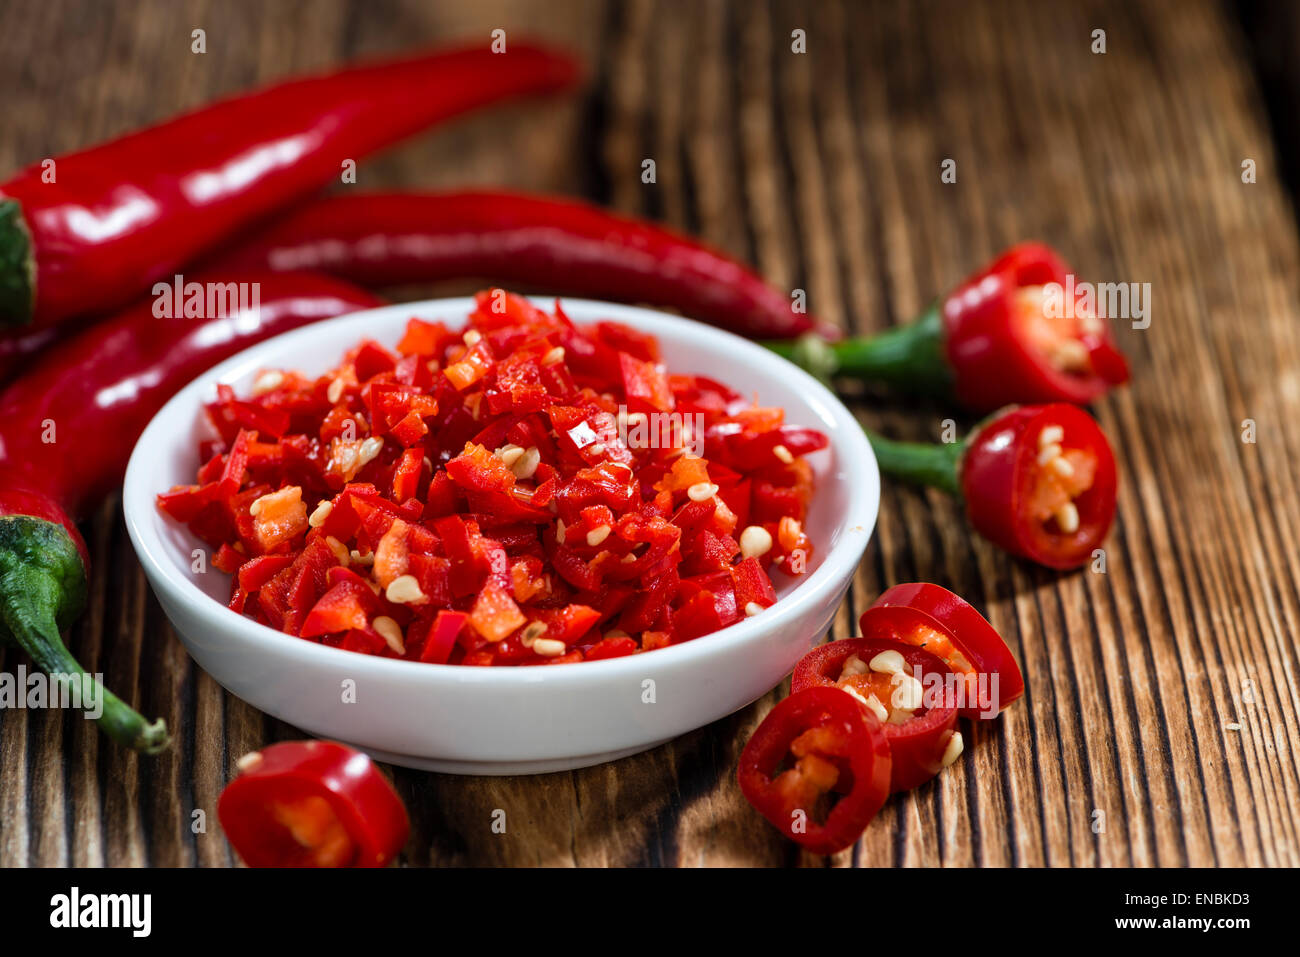 Cutted red Chilis (close-up shot) on wooden background - Stock Image